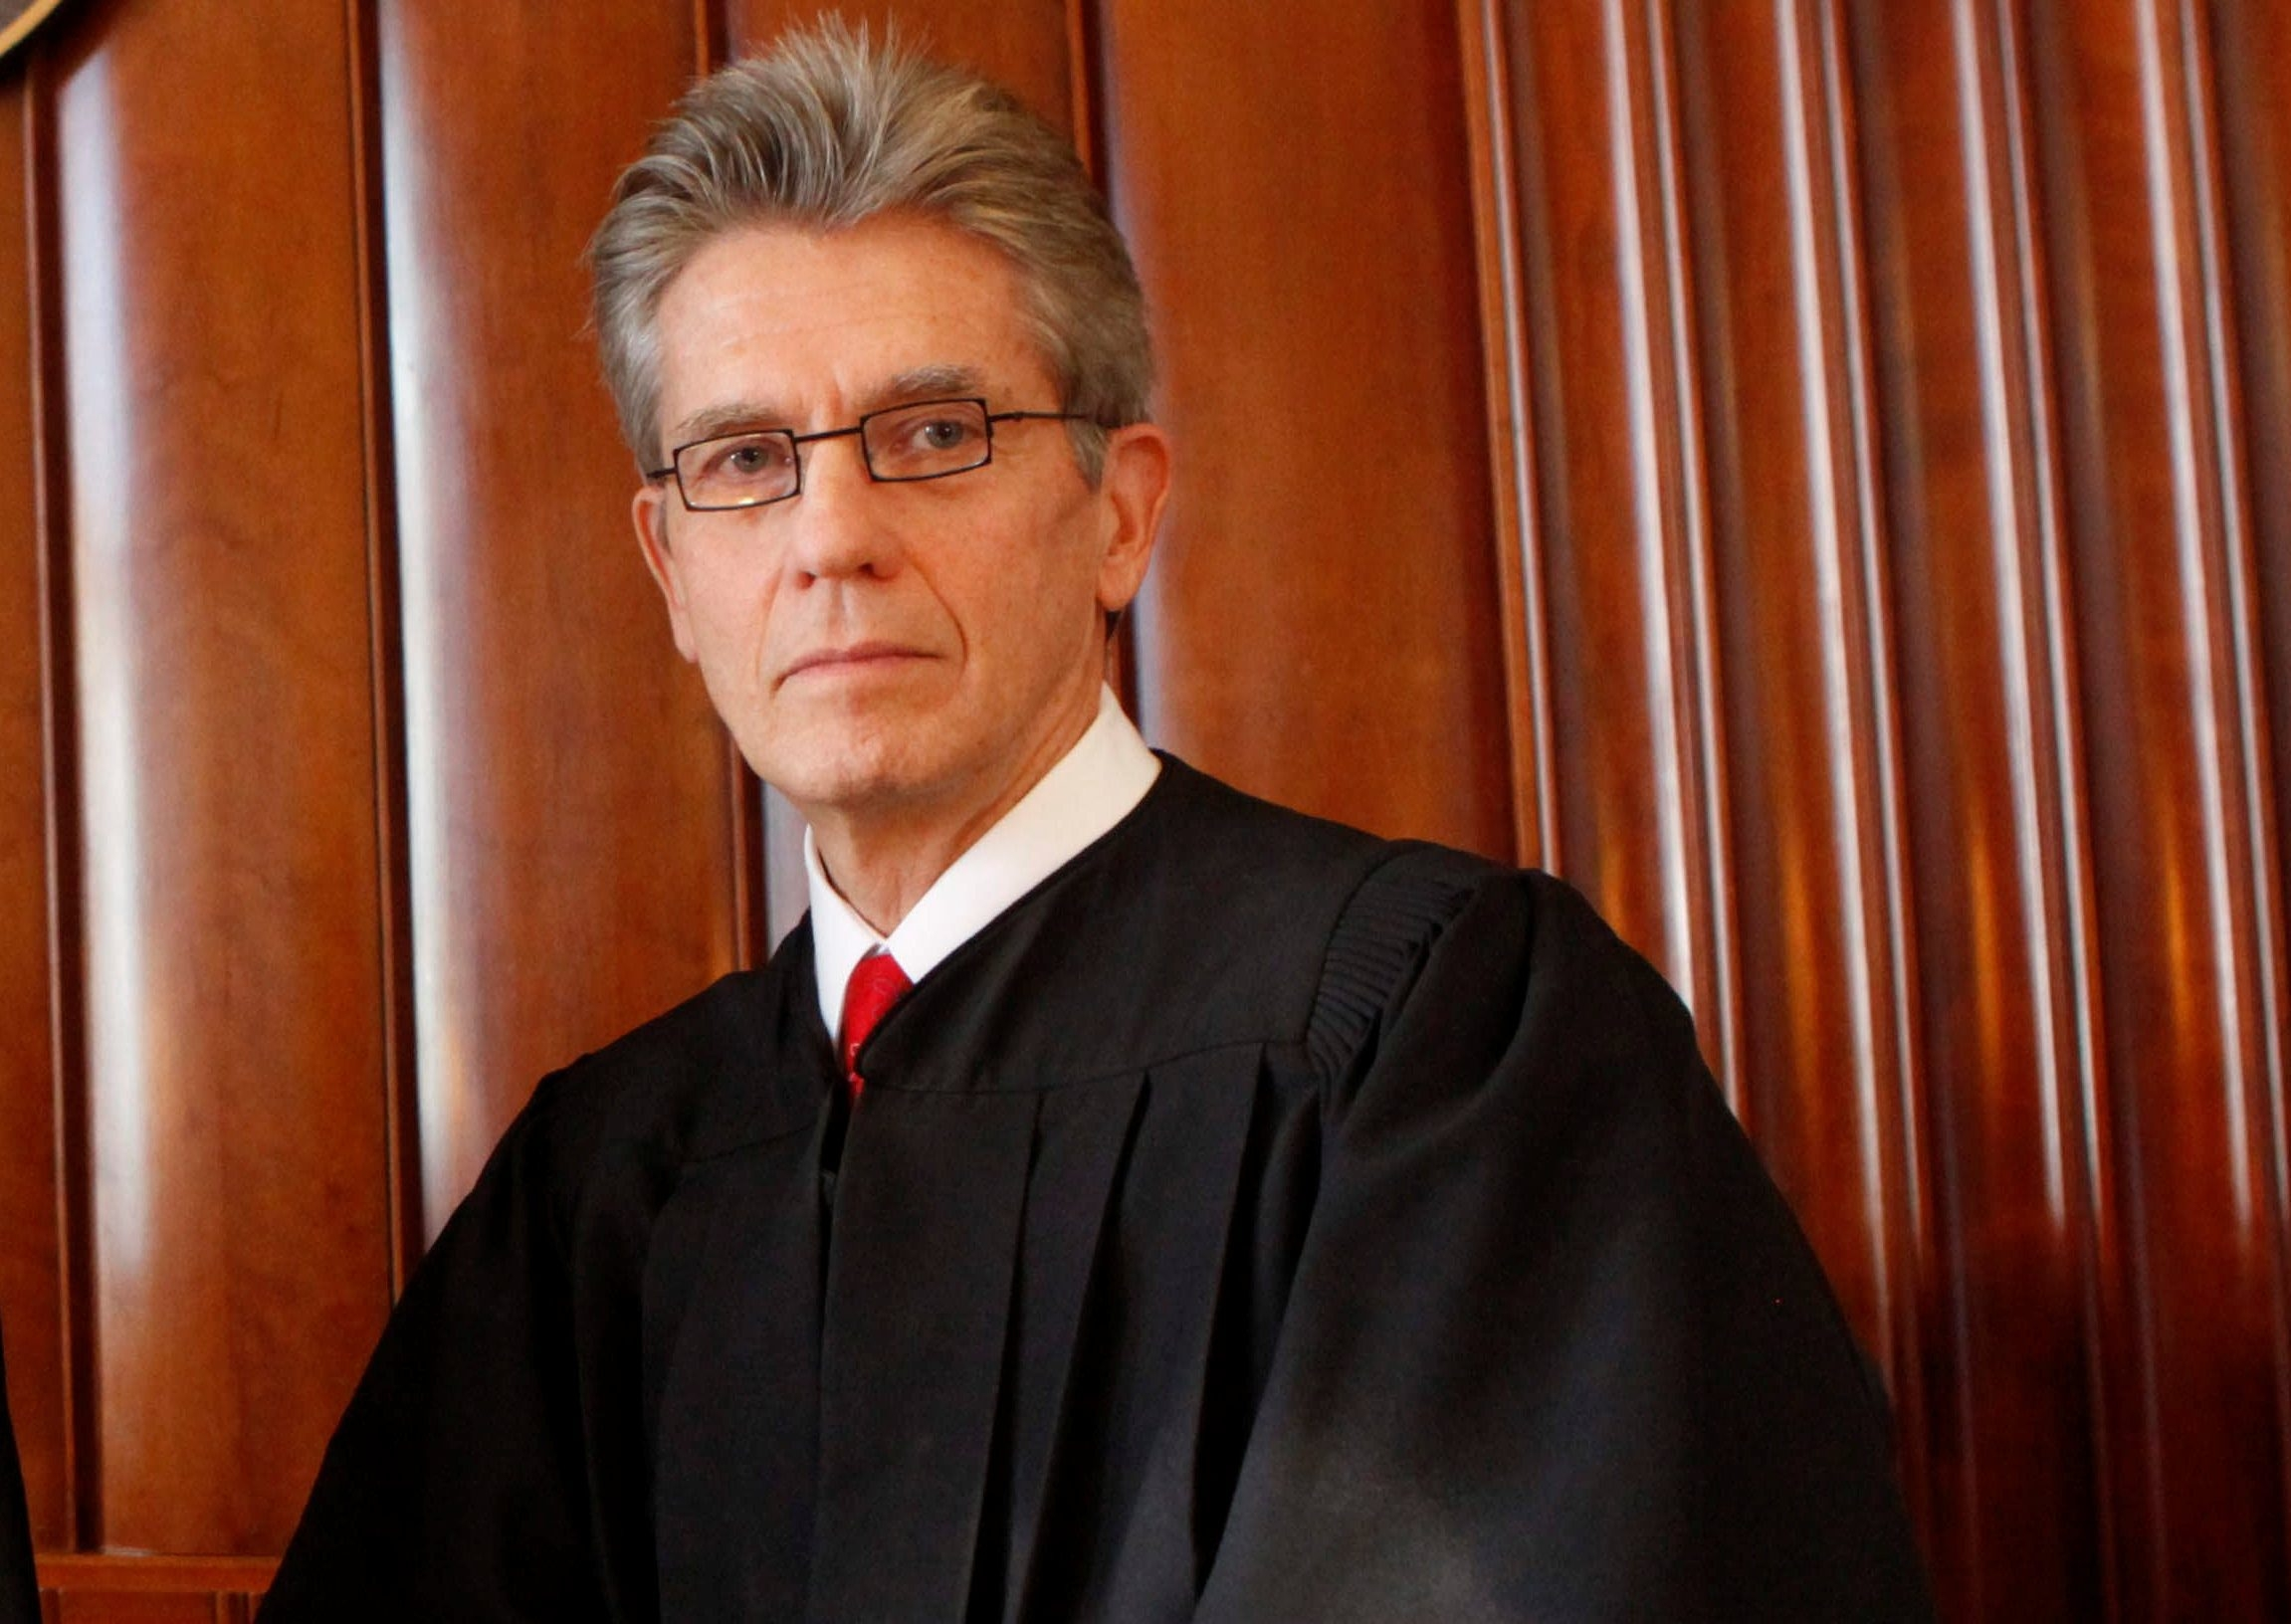 Chief U.S. District Judge William M. Skretny issued a restraining order against 13 companies engaging in abusive collections practices. (Buffalo News file photo)